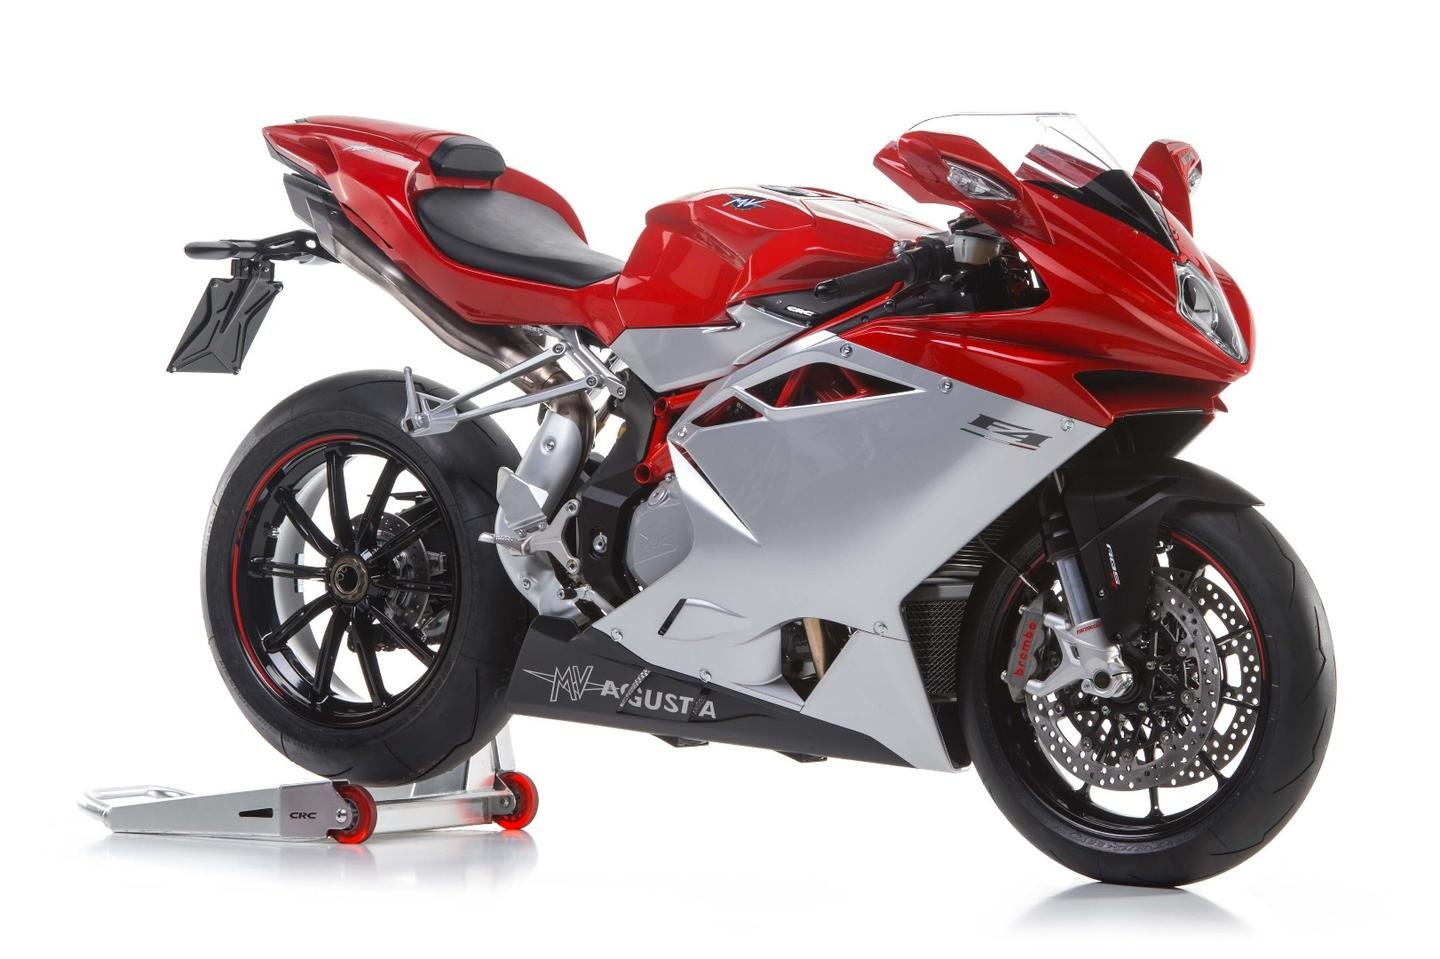 The basic version of the MV Agusta F4 superbike offered the base for the F4Z